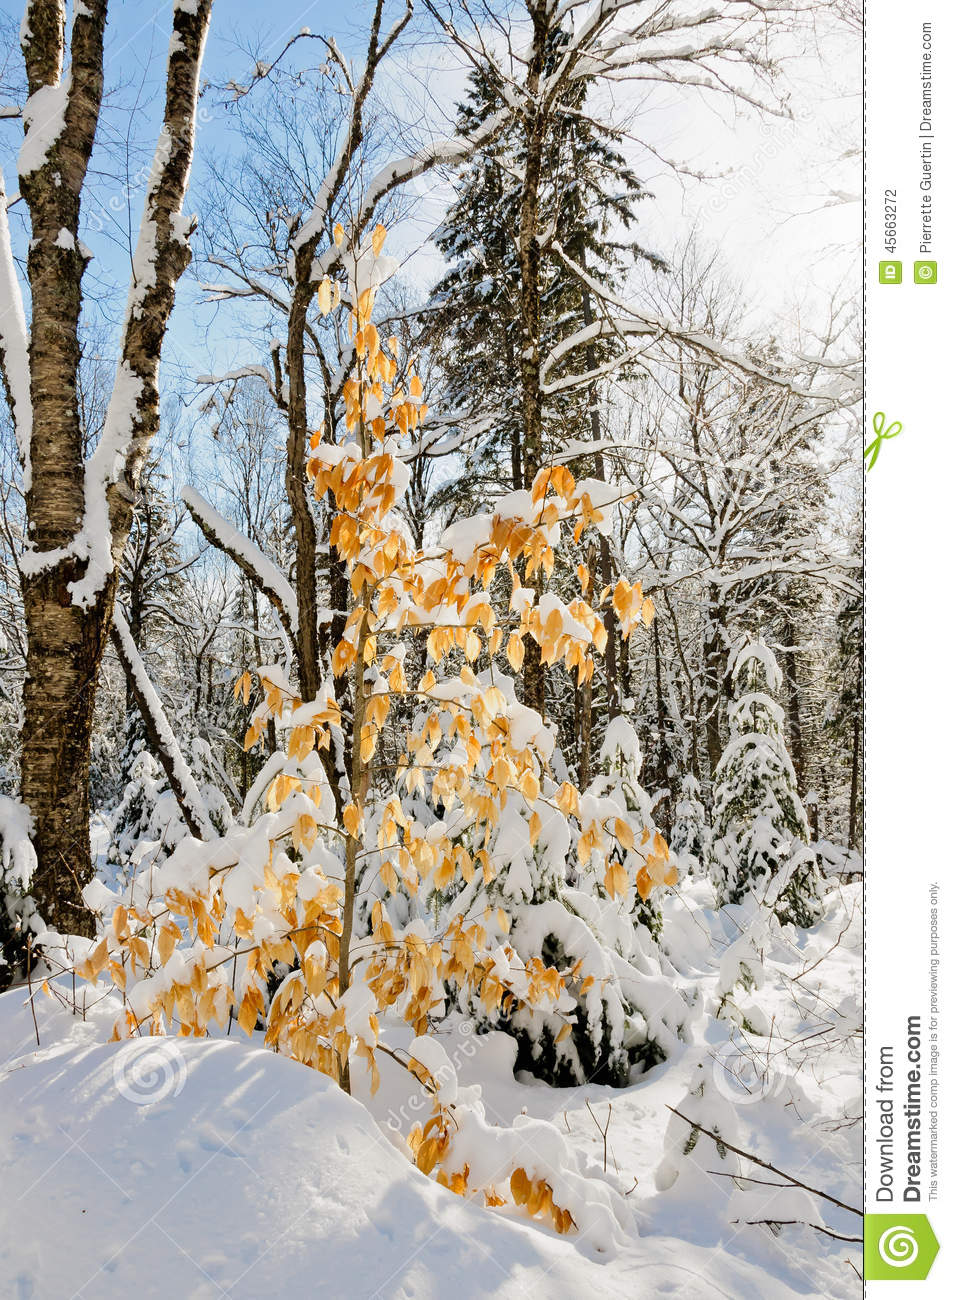 Winter Scenes After Snow Storm Stock Photo - Image of nature, wood